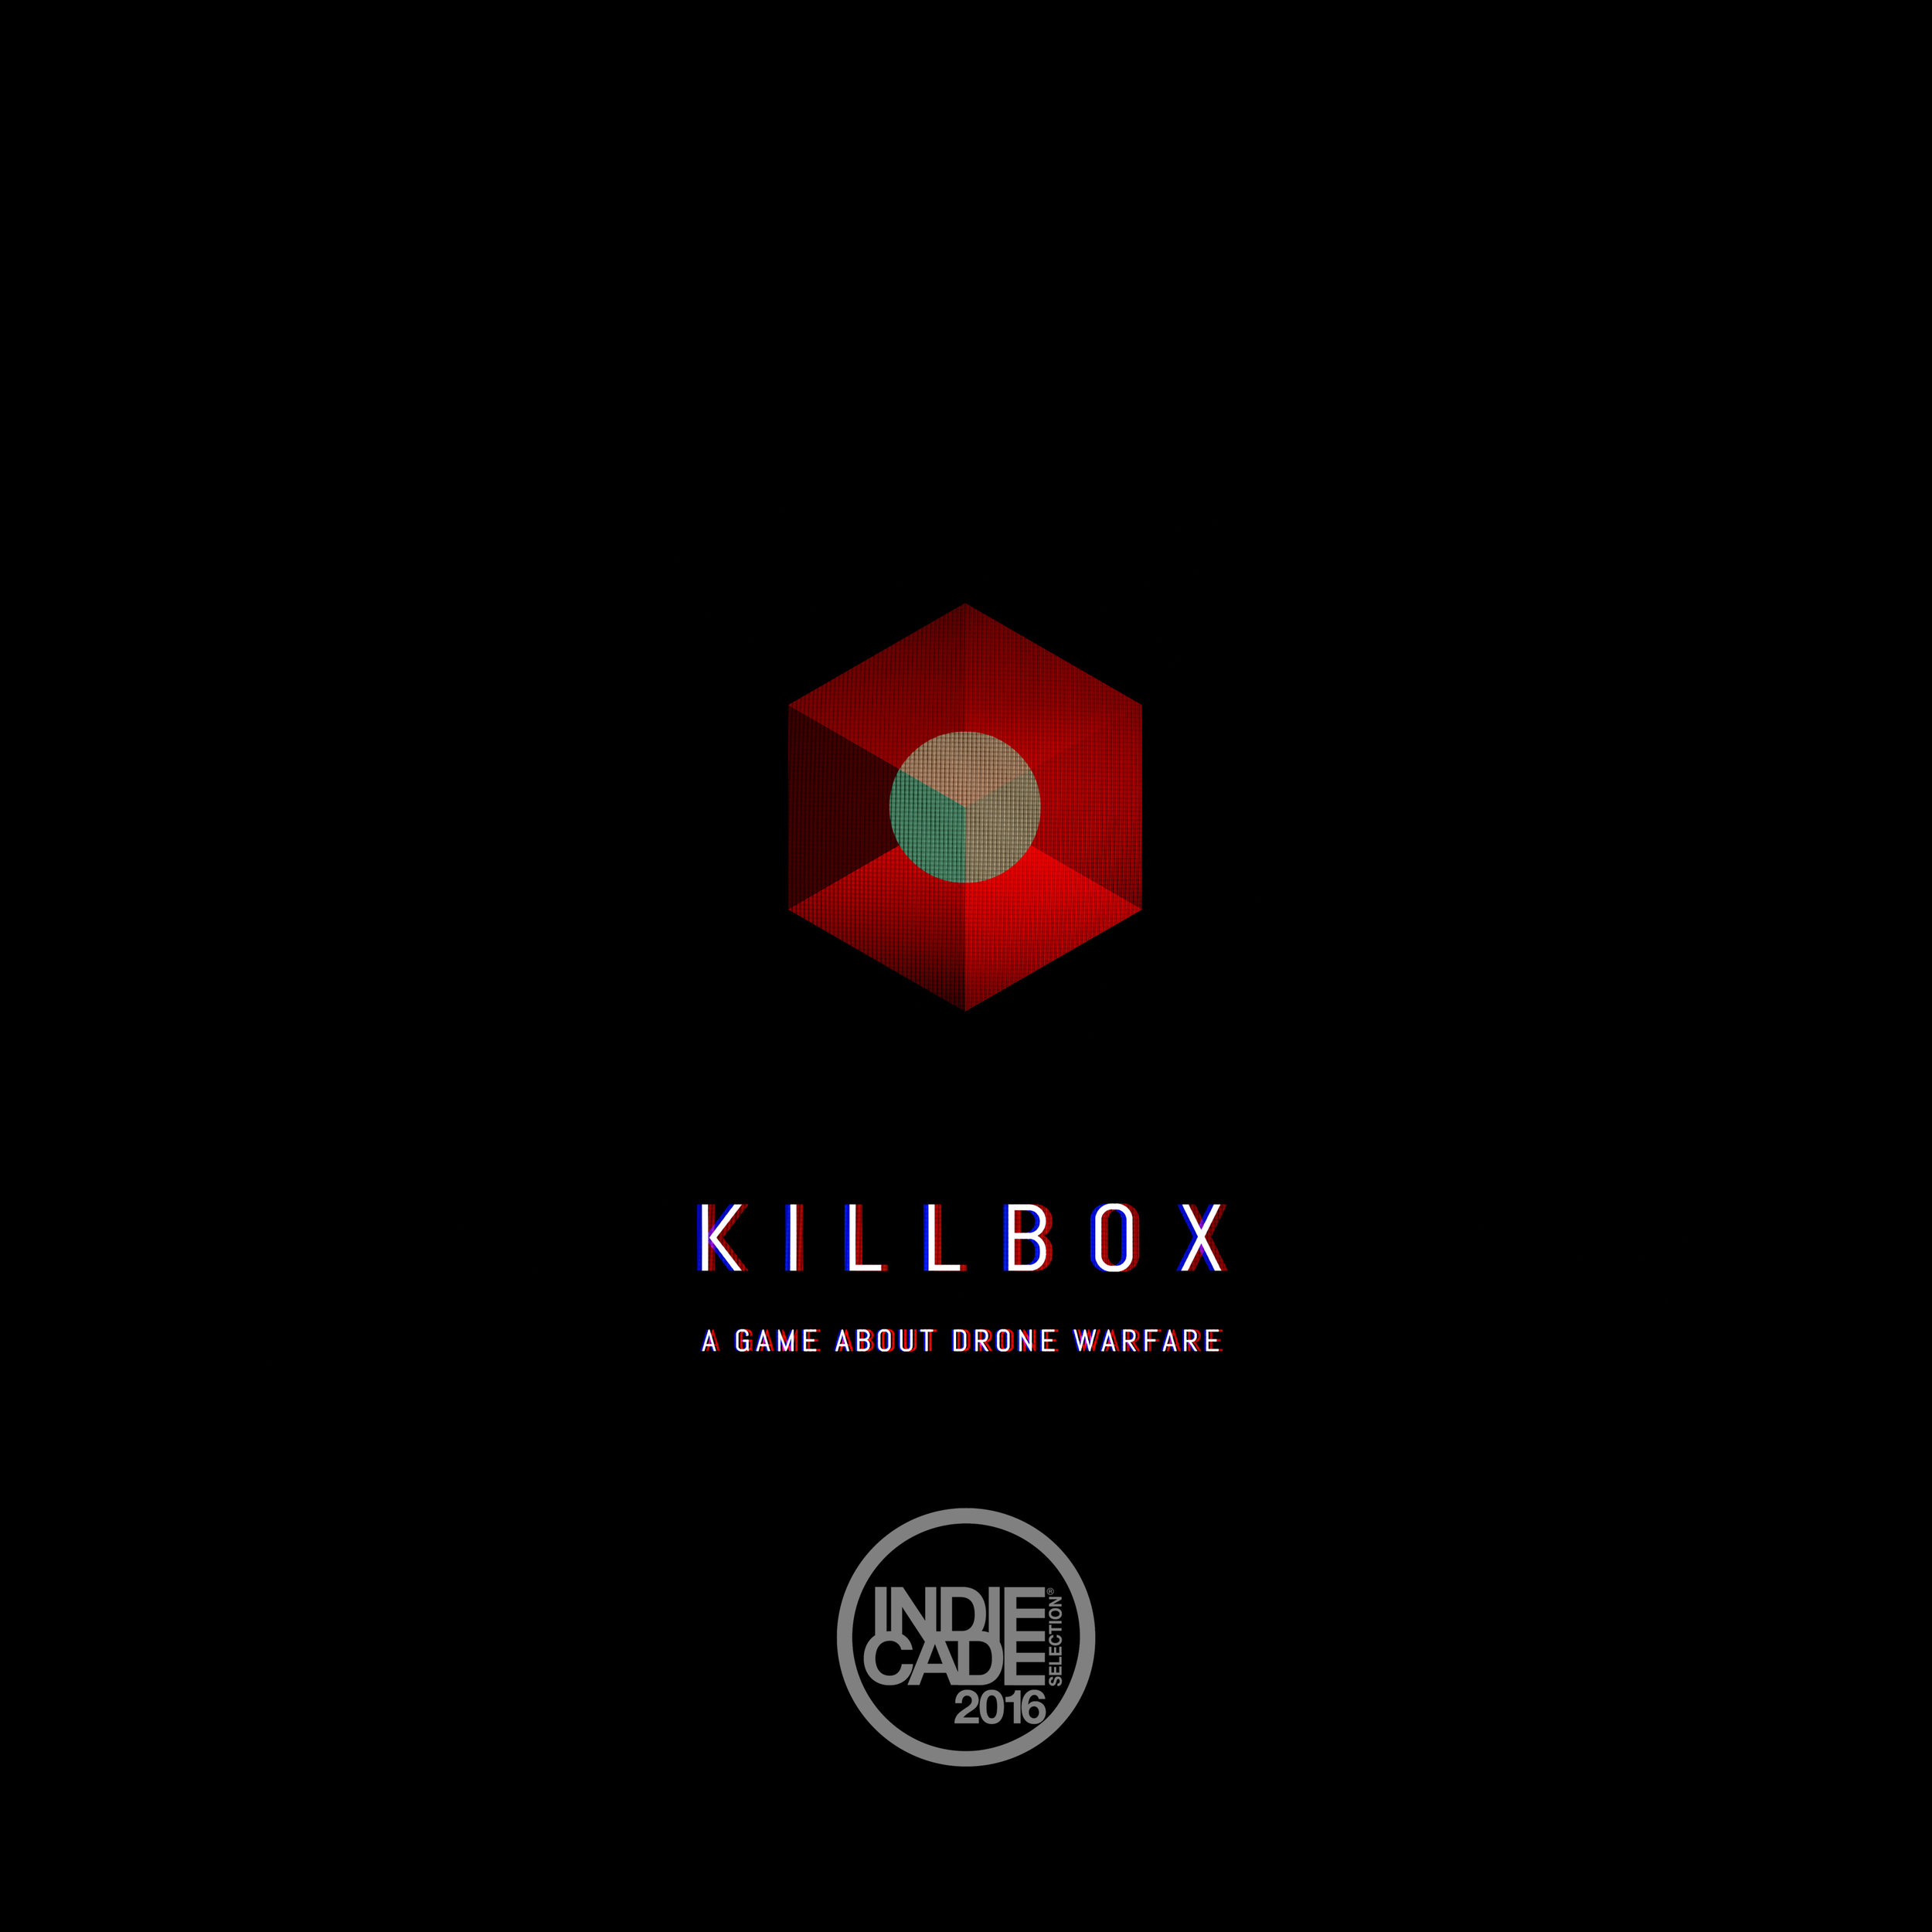 Killbox Poster No Glitch IndieCade2016.jpg